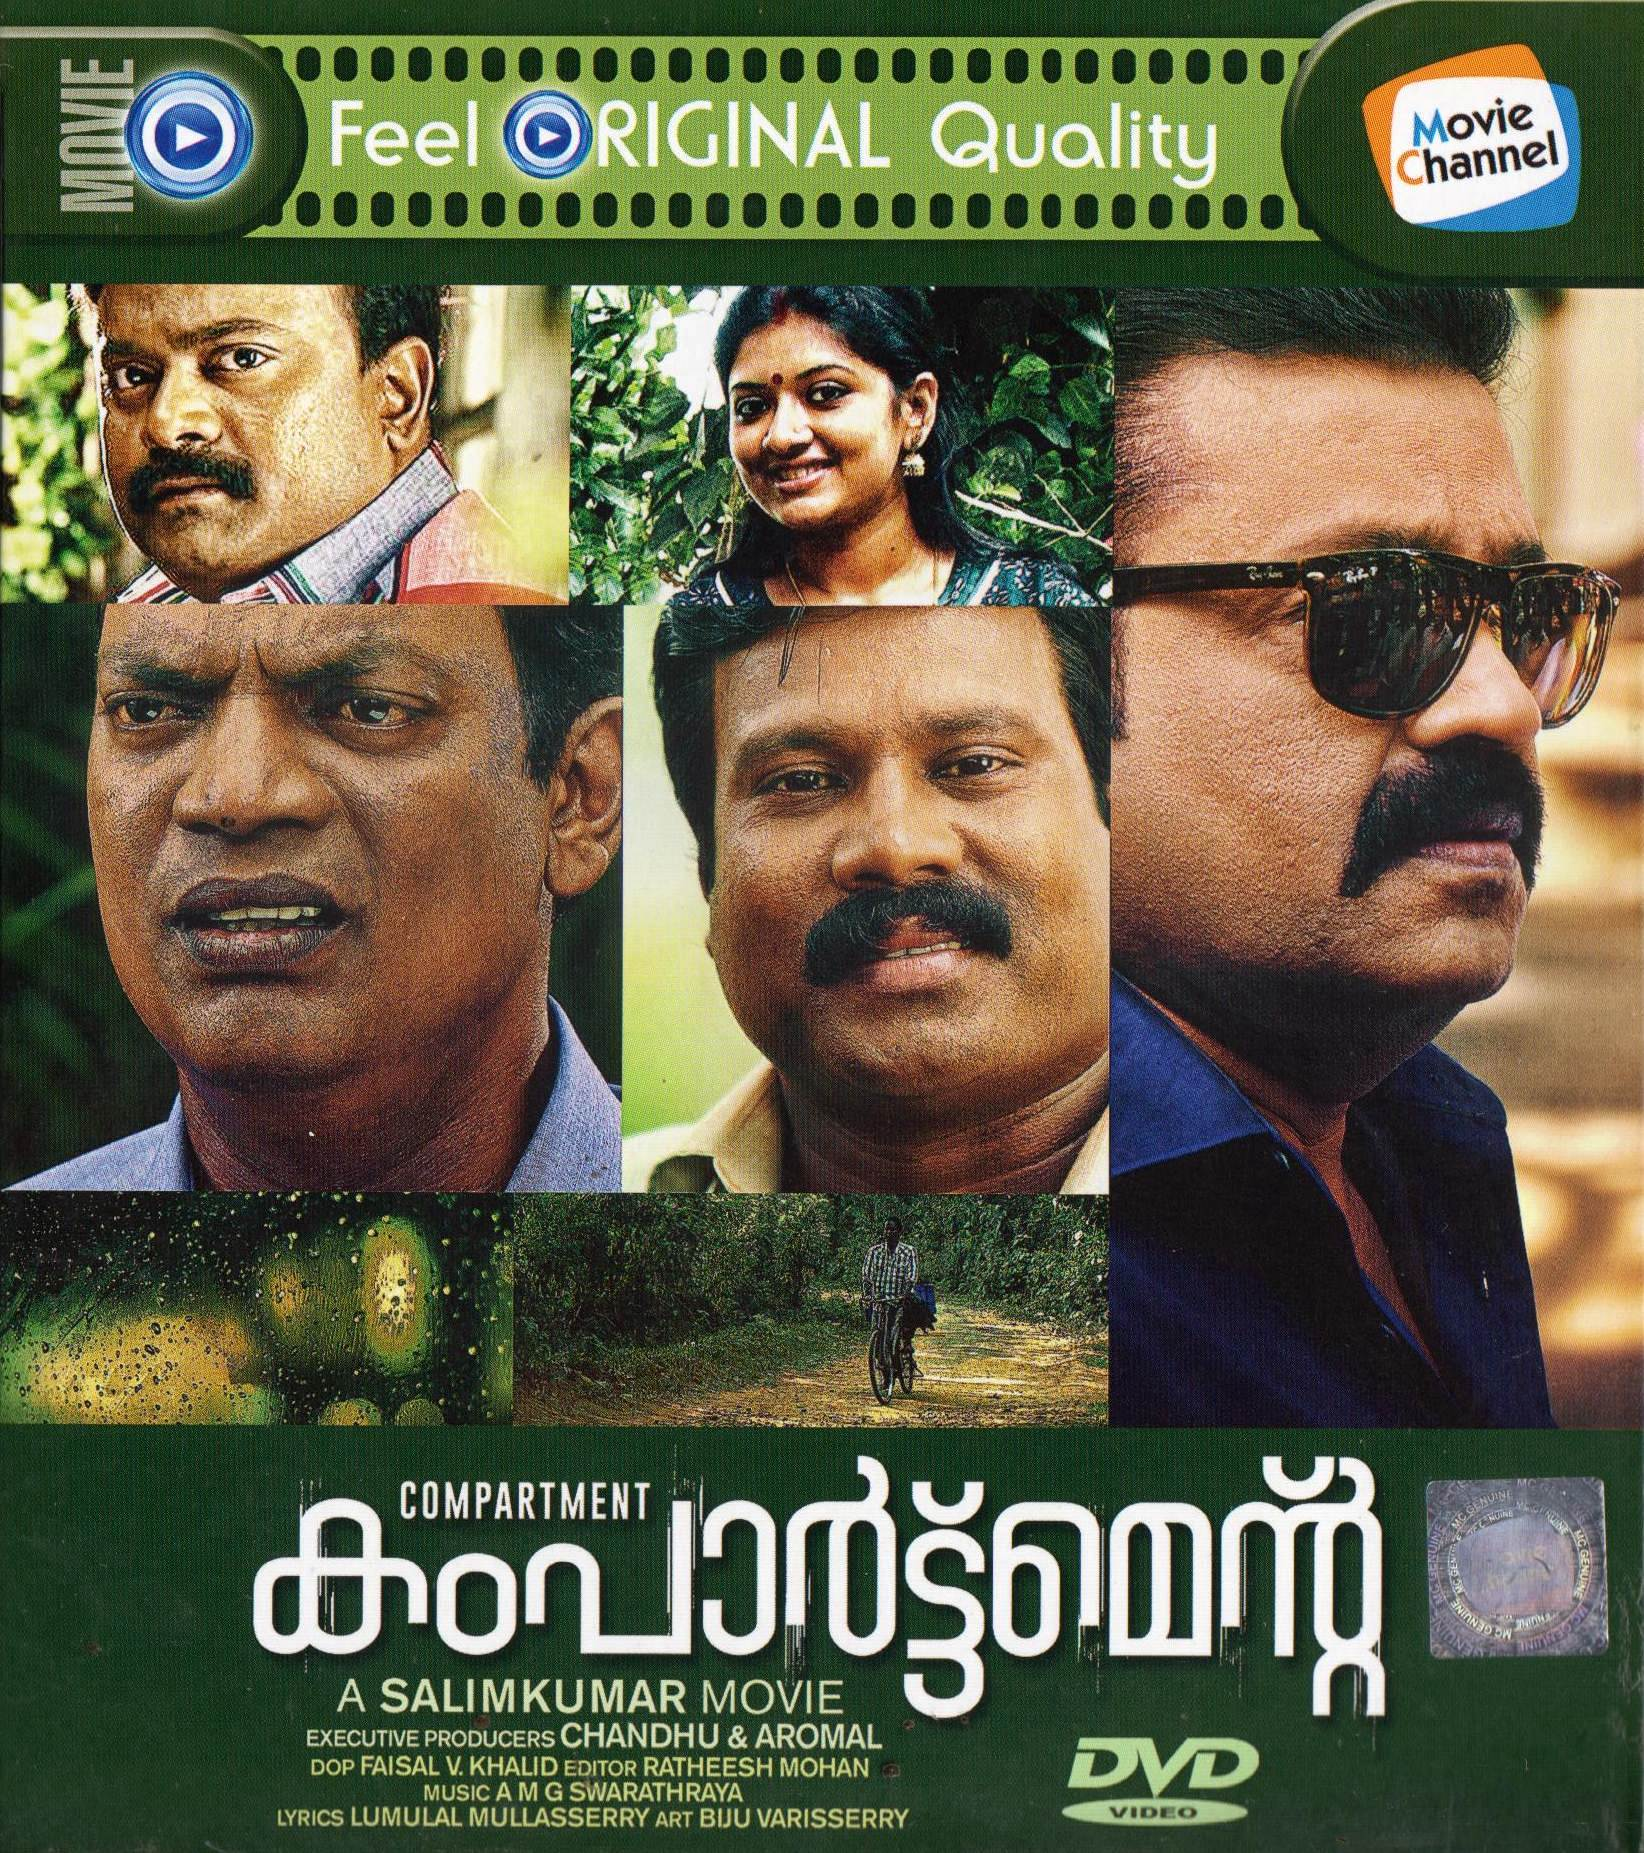 COMPARTMENT Malayalam Movies